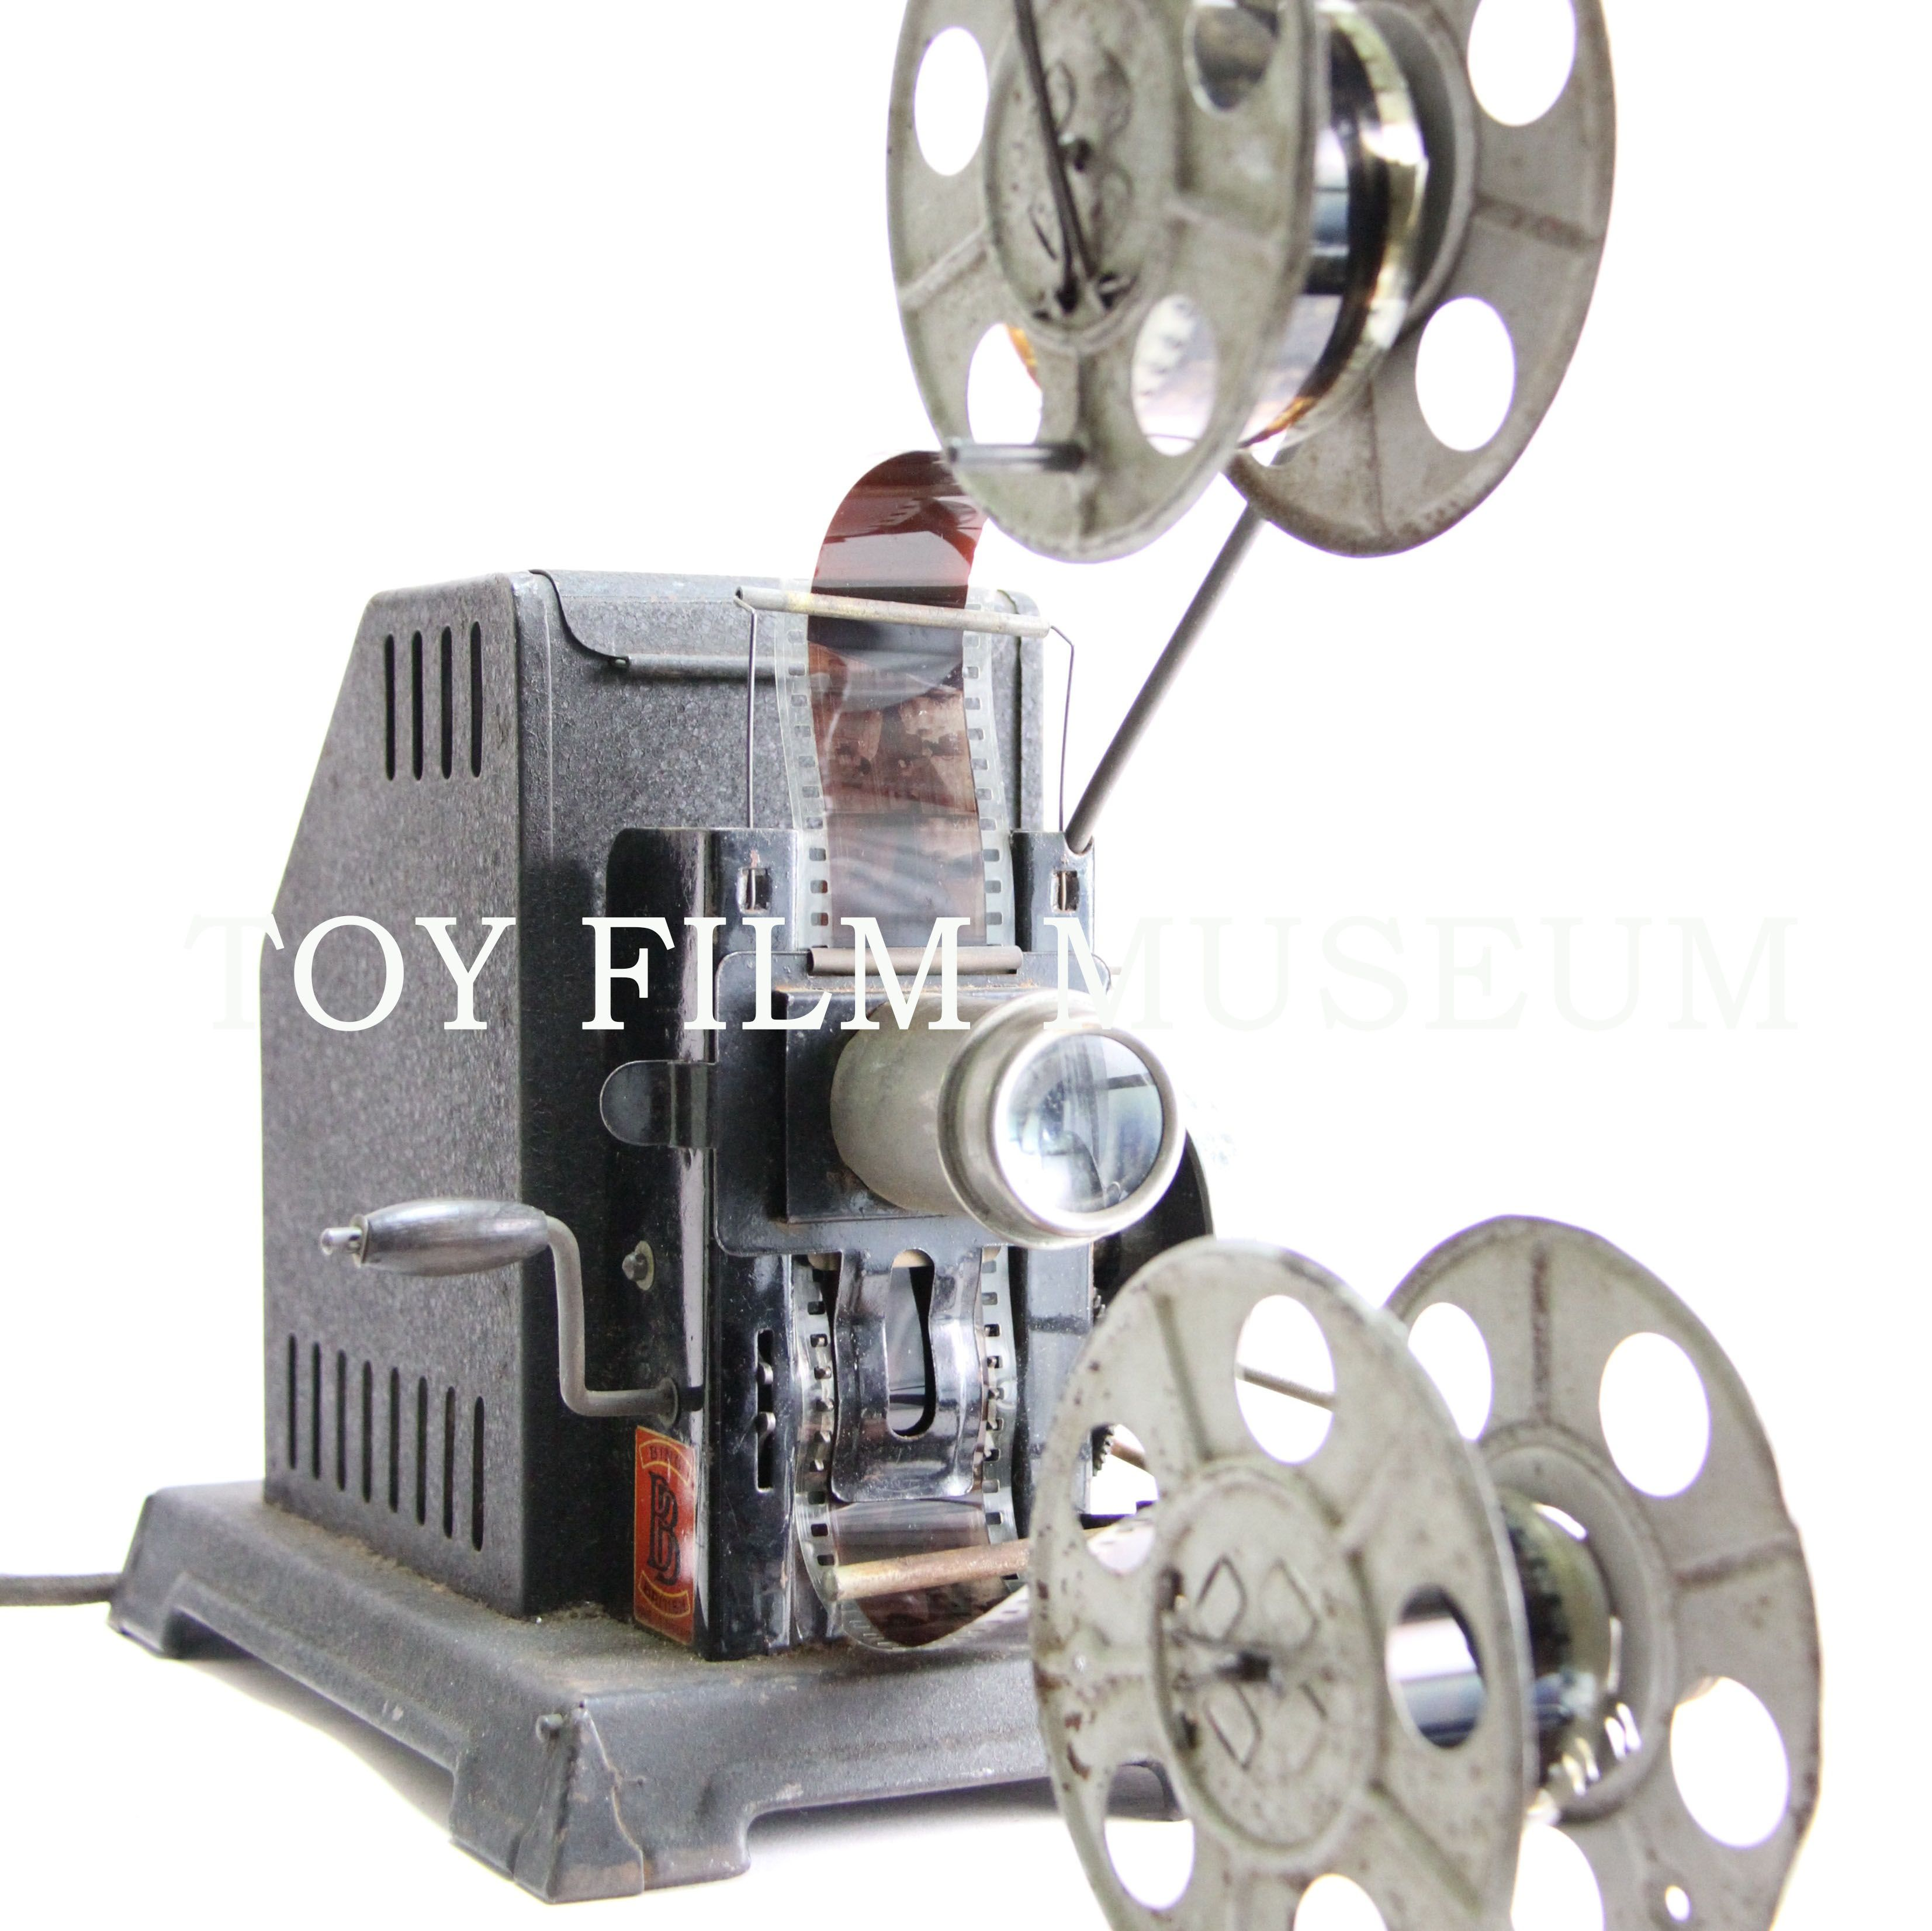 35mm Bing British Hand Cranked Projector